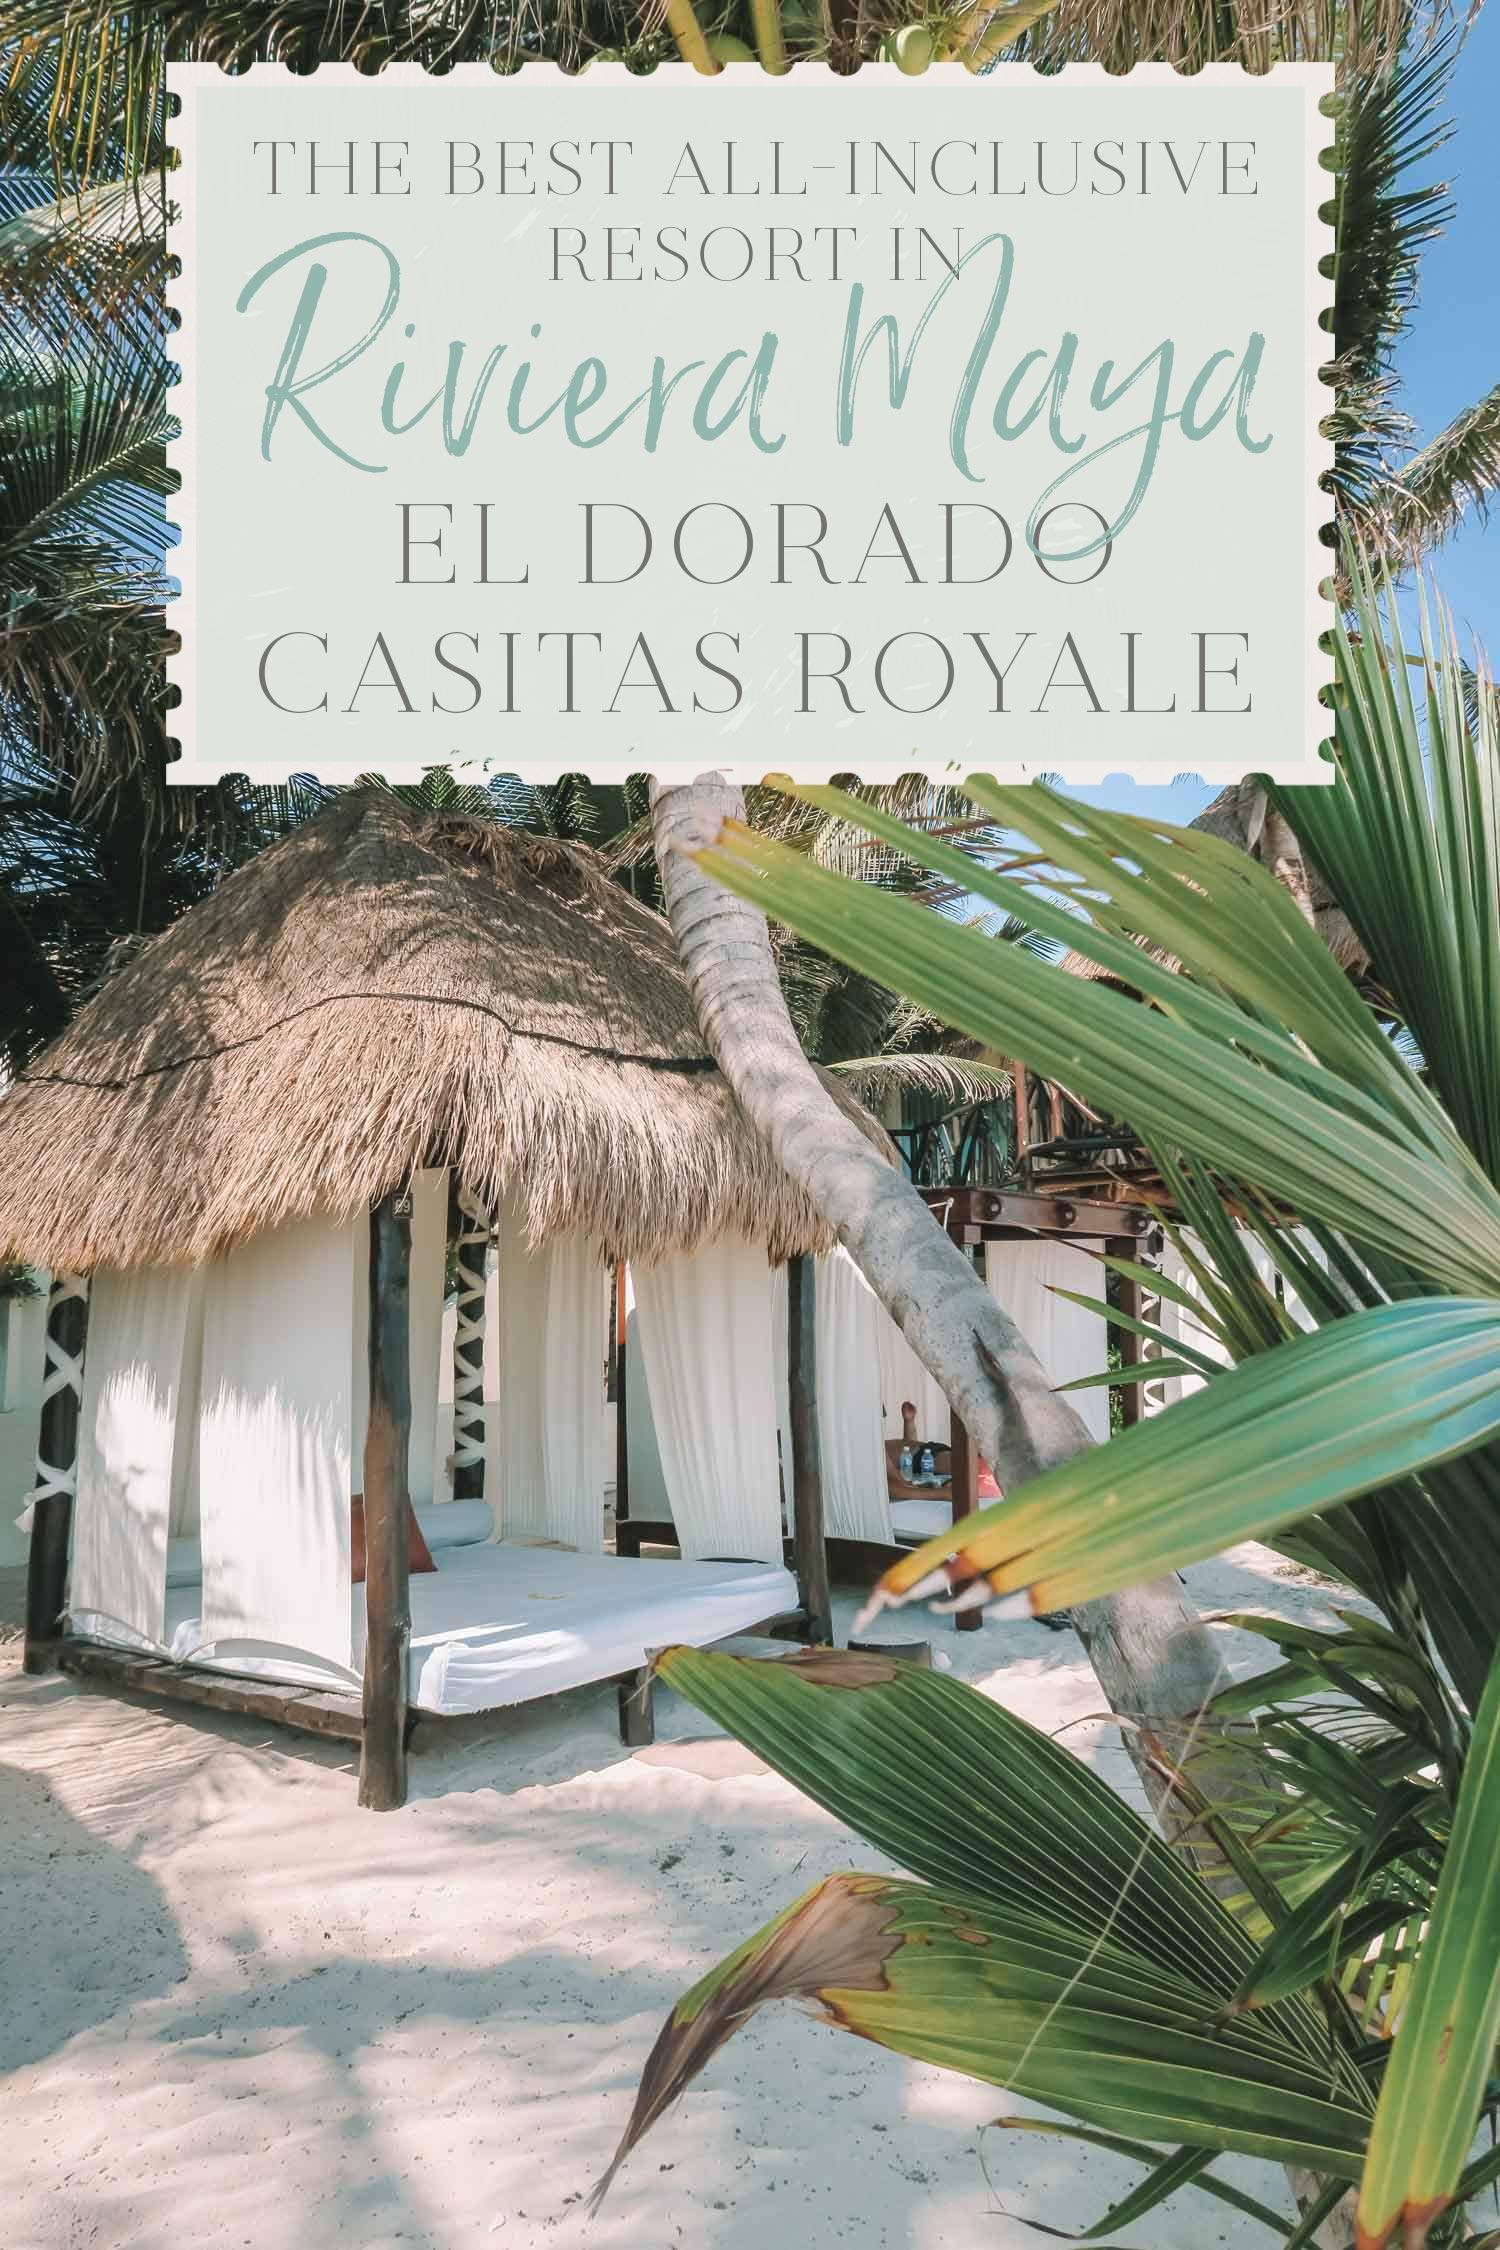 Cuisine Royale Guide The Best All Inclusive Resort In Riviera Maya El Dorado Casitas